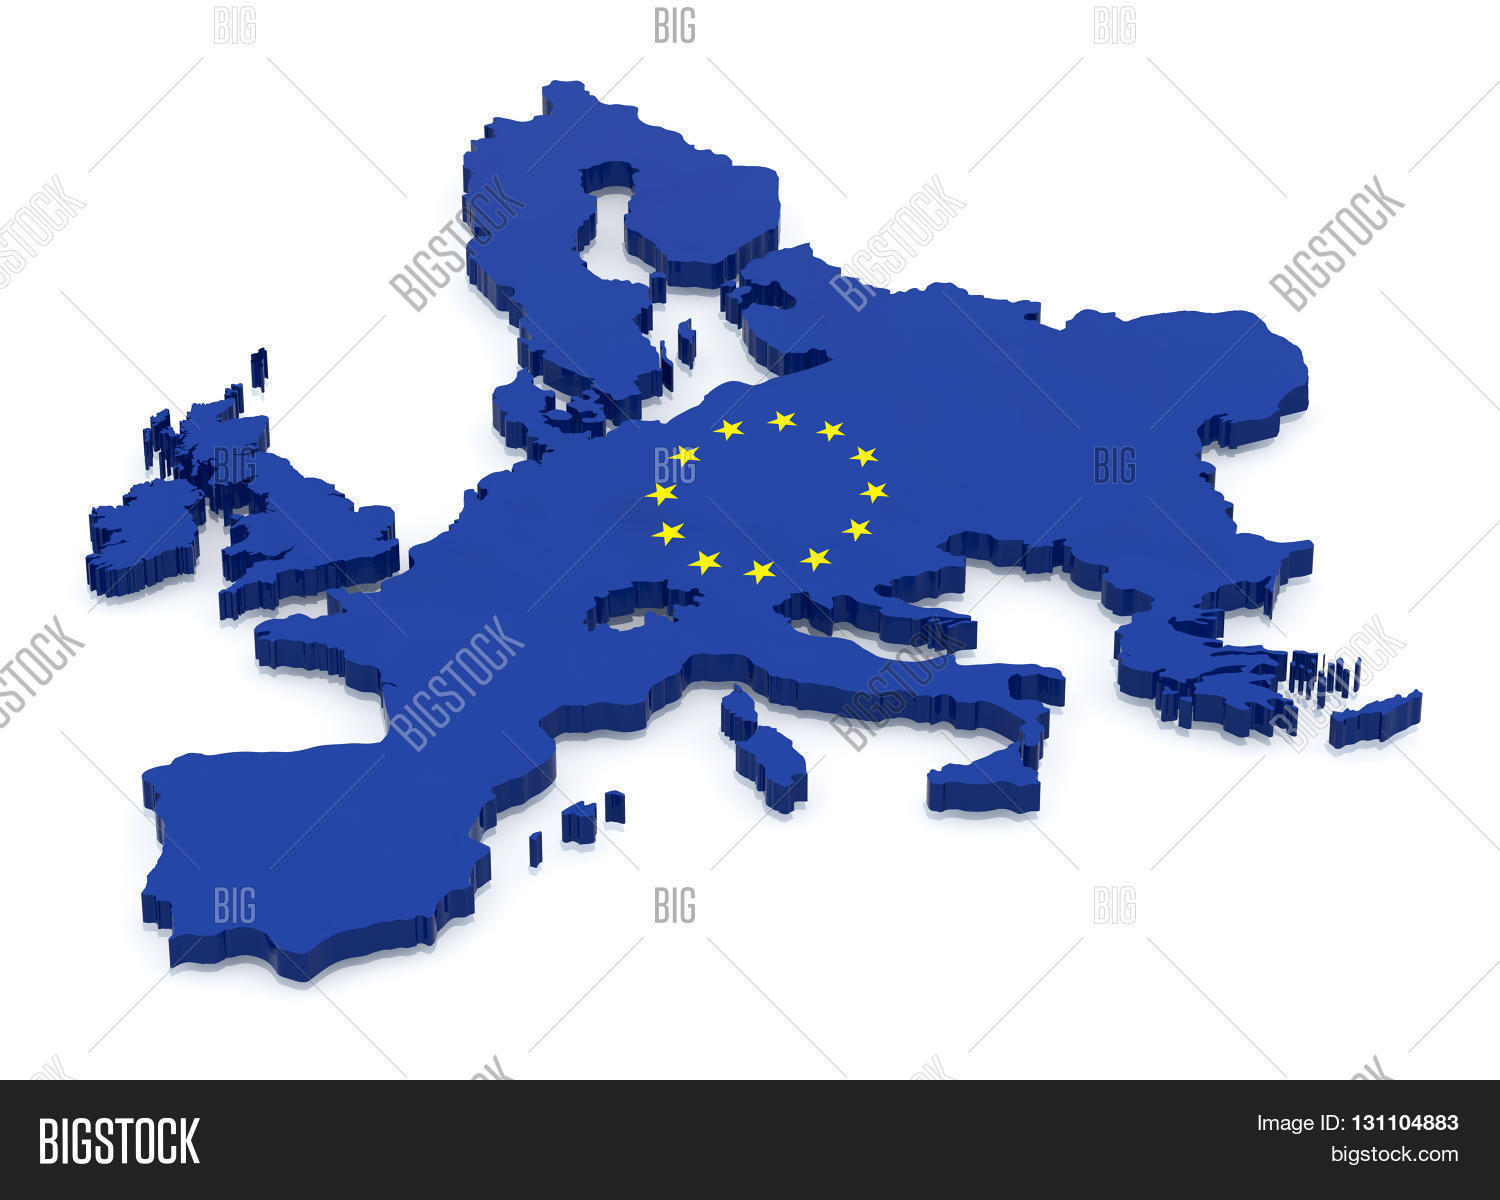 Map Europe Flag Color Image & Photo (Free Trial) | Bigstock on free large united states map, free blank continent maps, large detailed map europe, free maps to print, free large printable world map, free large map of florida, large wall maps of europe, free vintage map printables, map of central europe, free large print world map, free printable blank world map, large map of eastern europe,